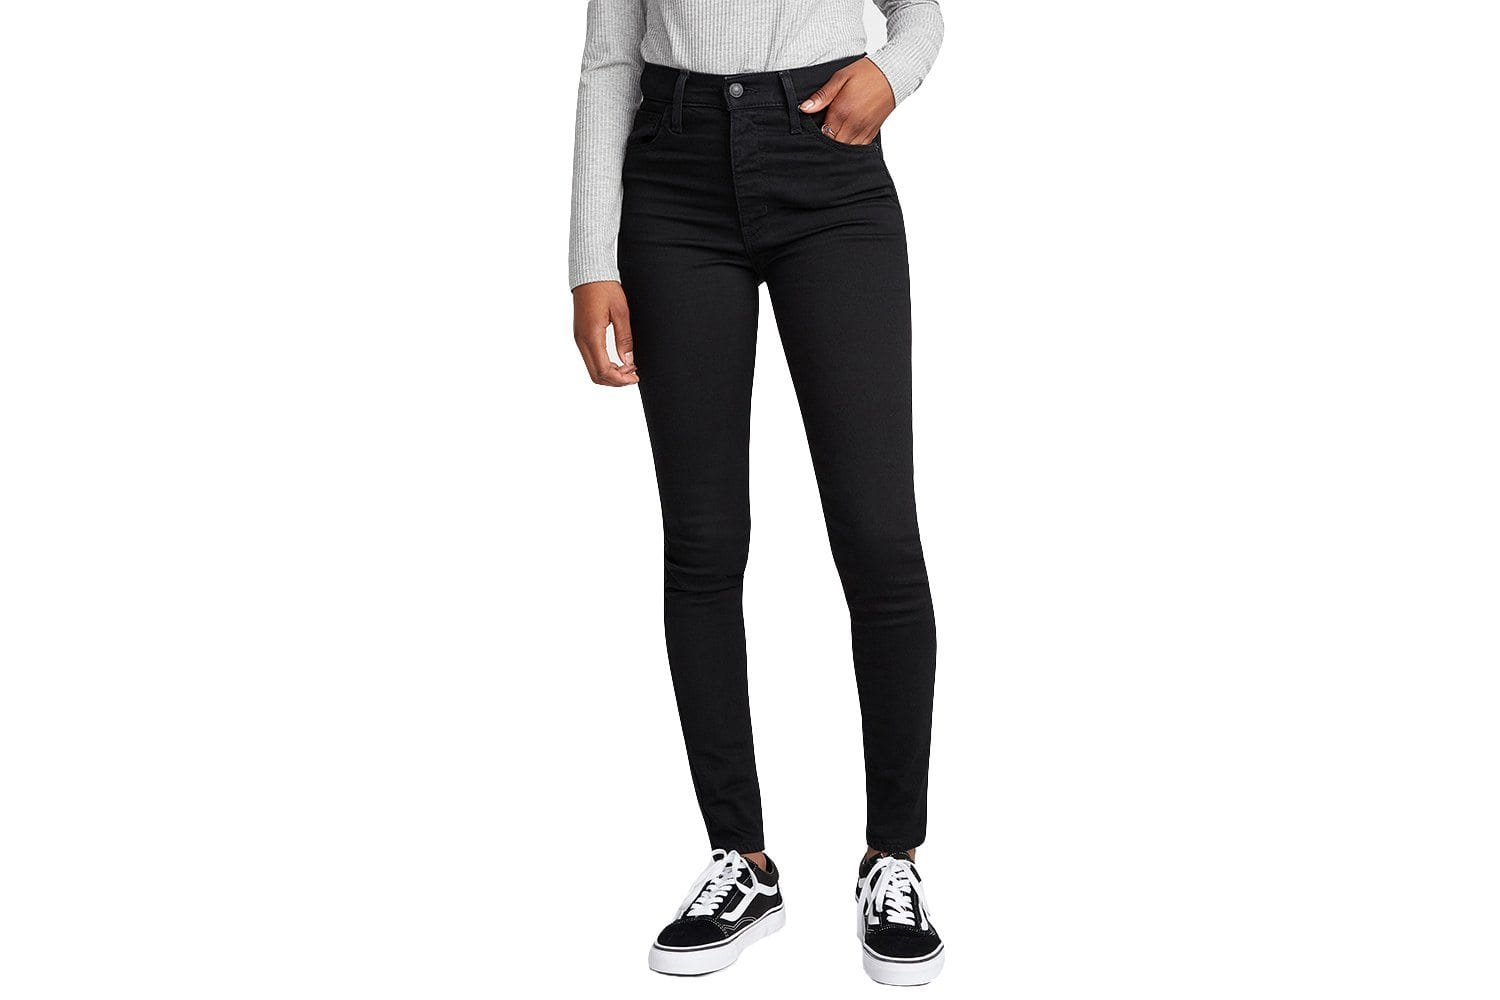 MILE HIGH SUPER SKINNY WOMENS SOFTGOODS LEVIS BLACK 25